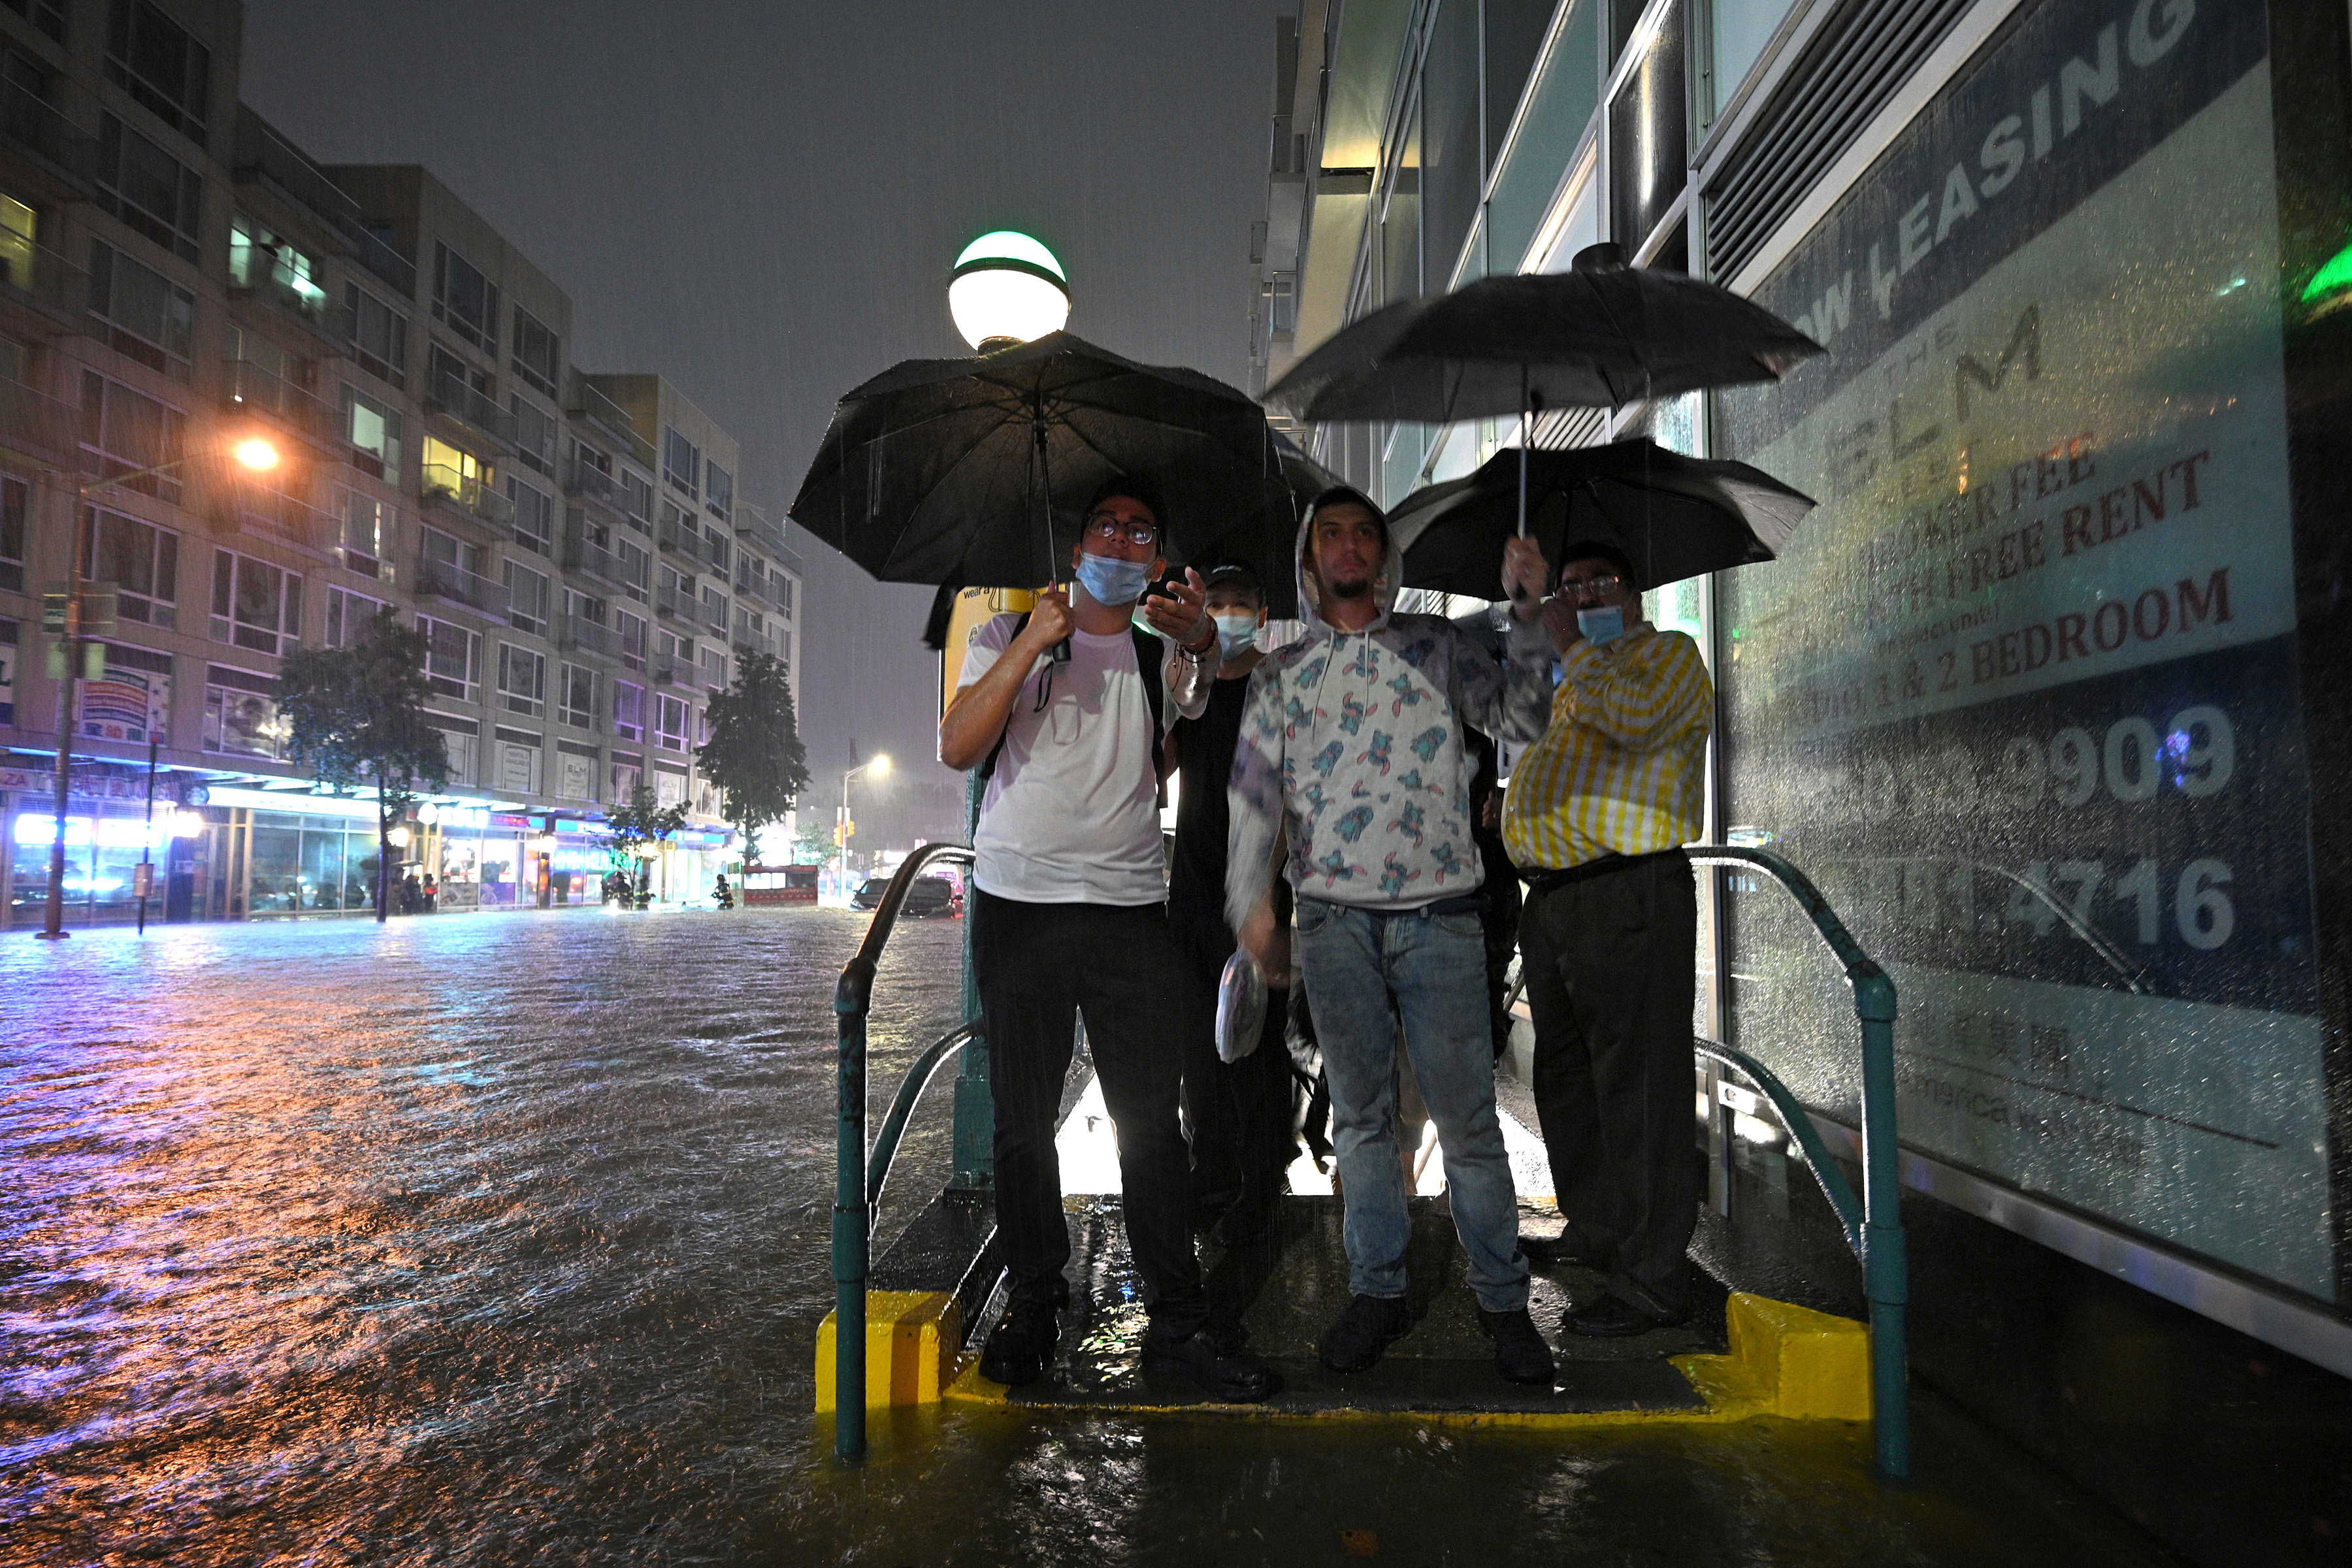 People stand at a flooded subway entrance as they debate wading through high water caused by the remnants of Hurricane Ida, in Queens, New York, on September 1.